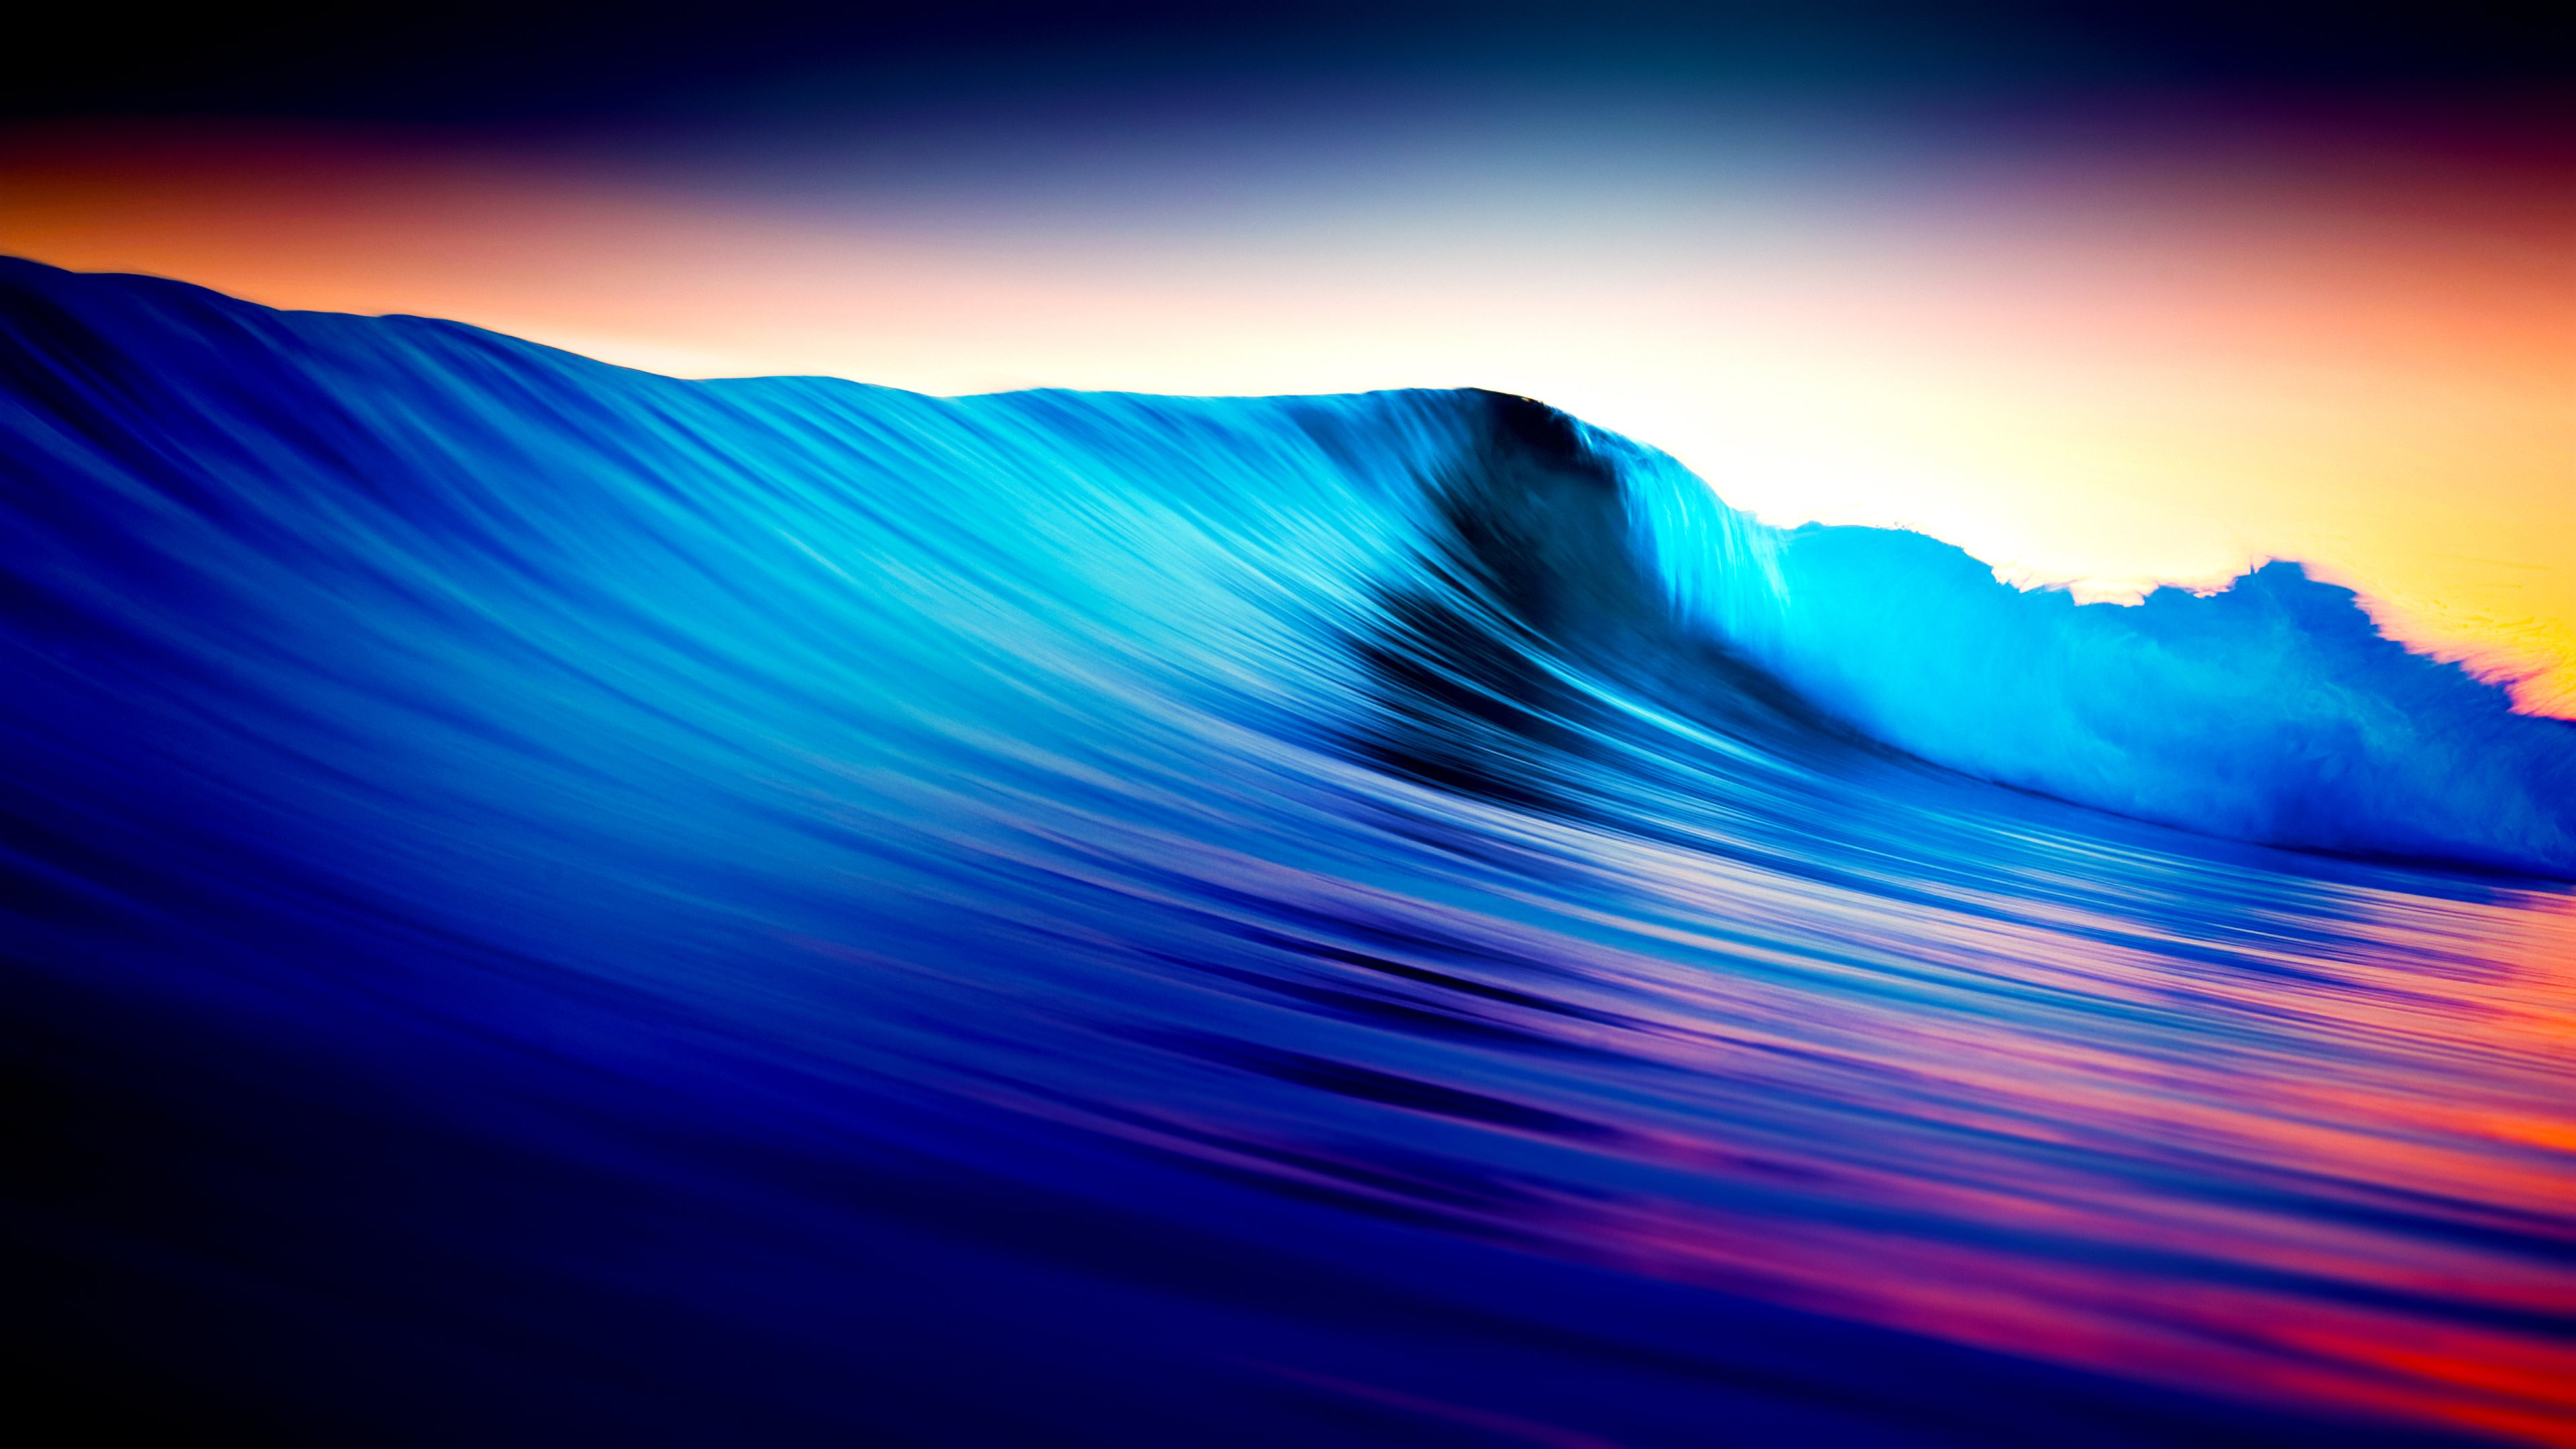 4k hd wallpaper rolling waves mod 1st 4k wallpaper from aaron s 3840x2160